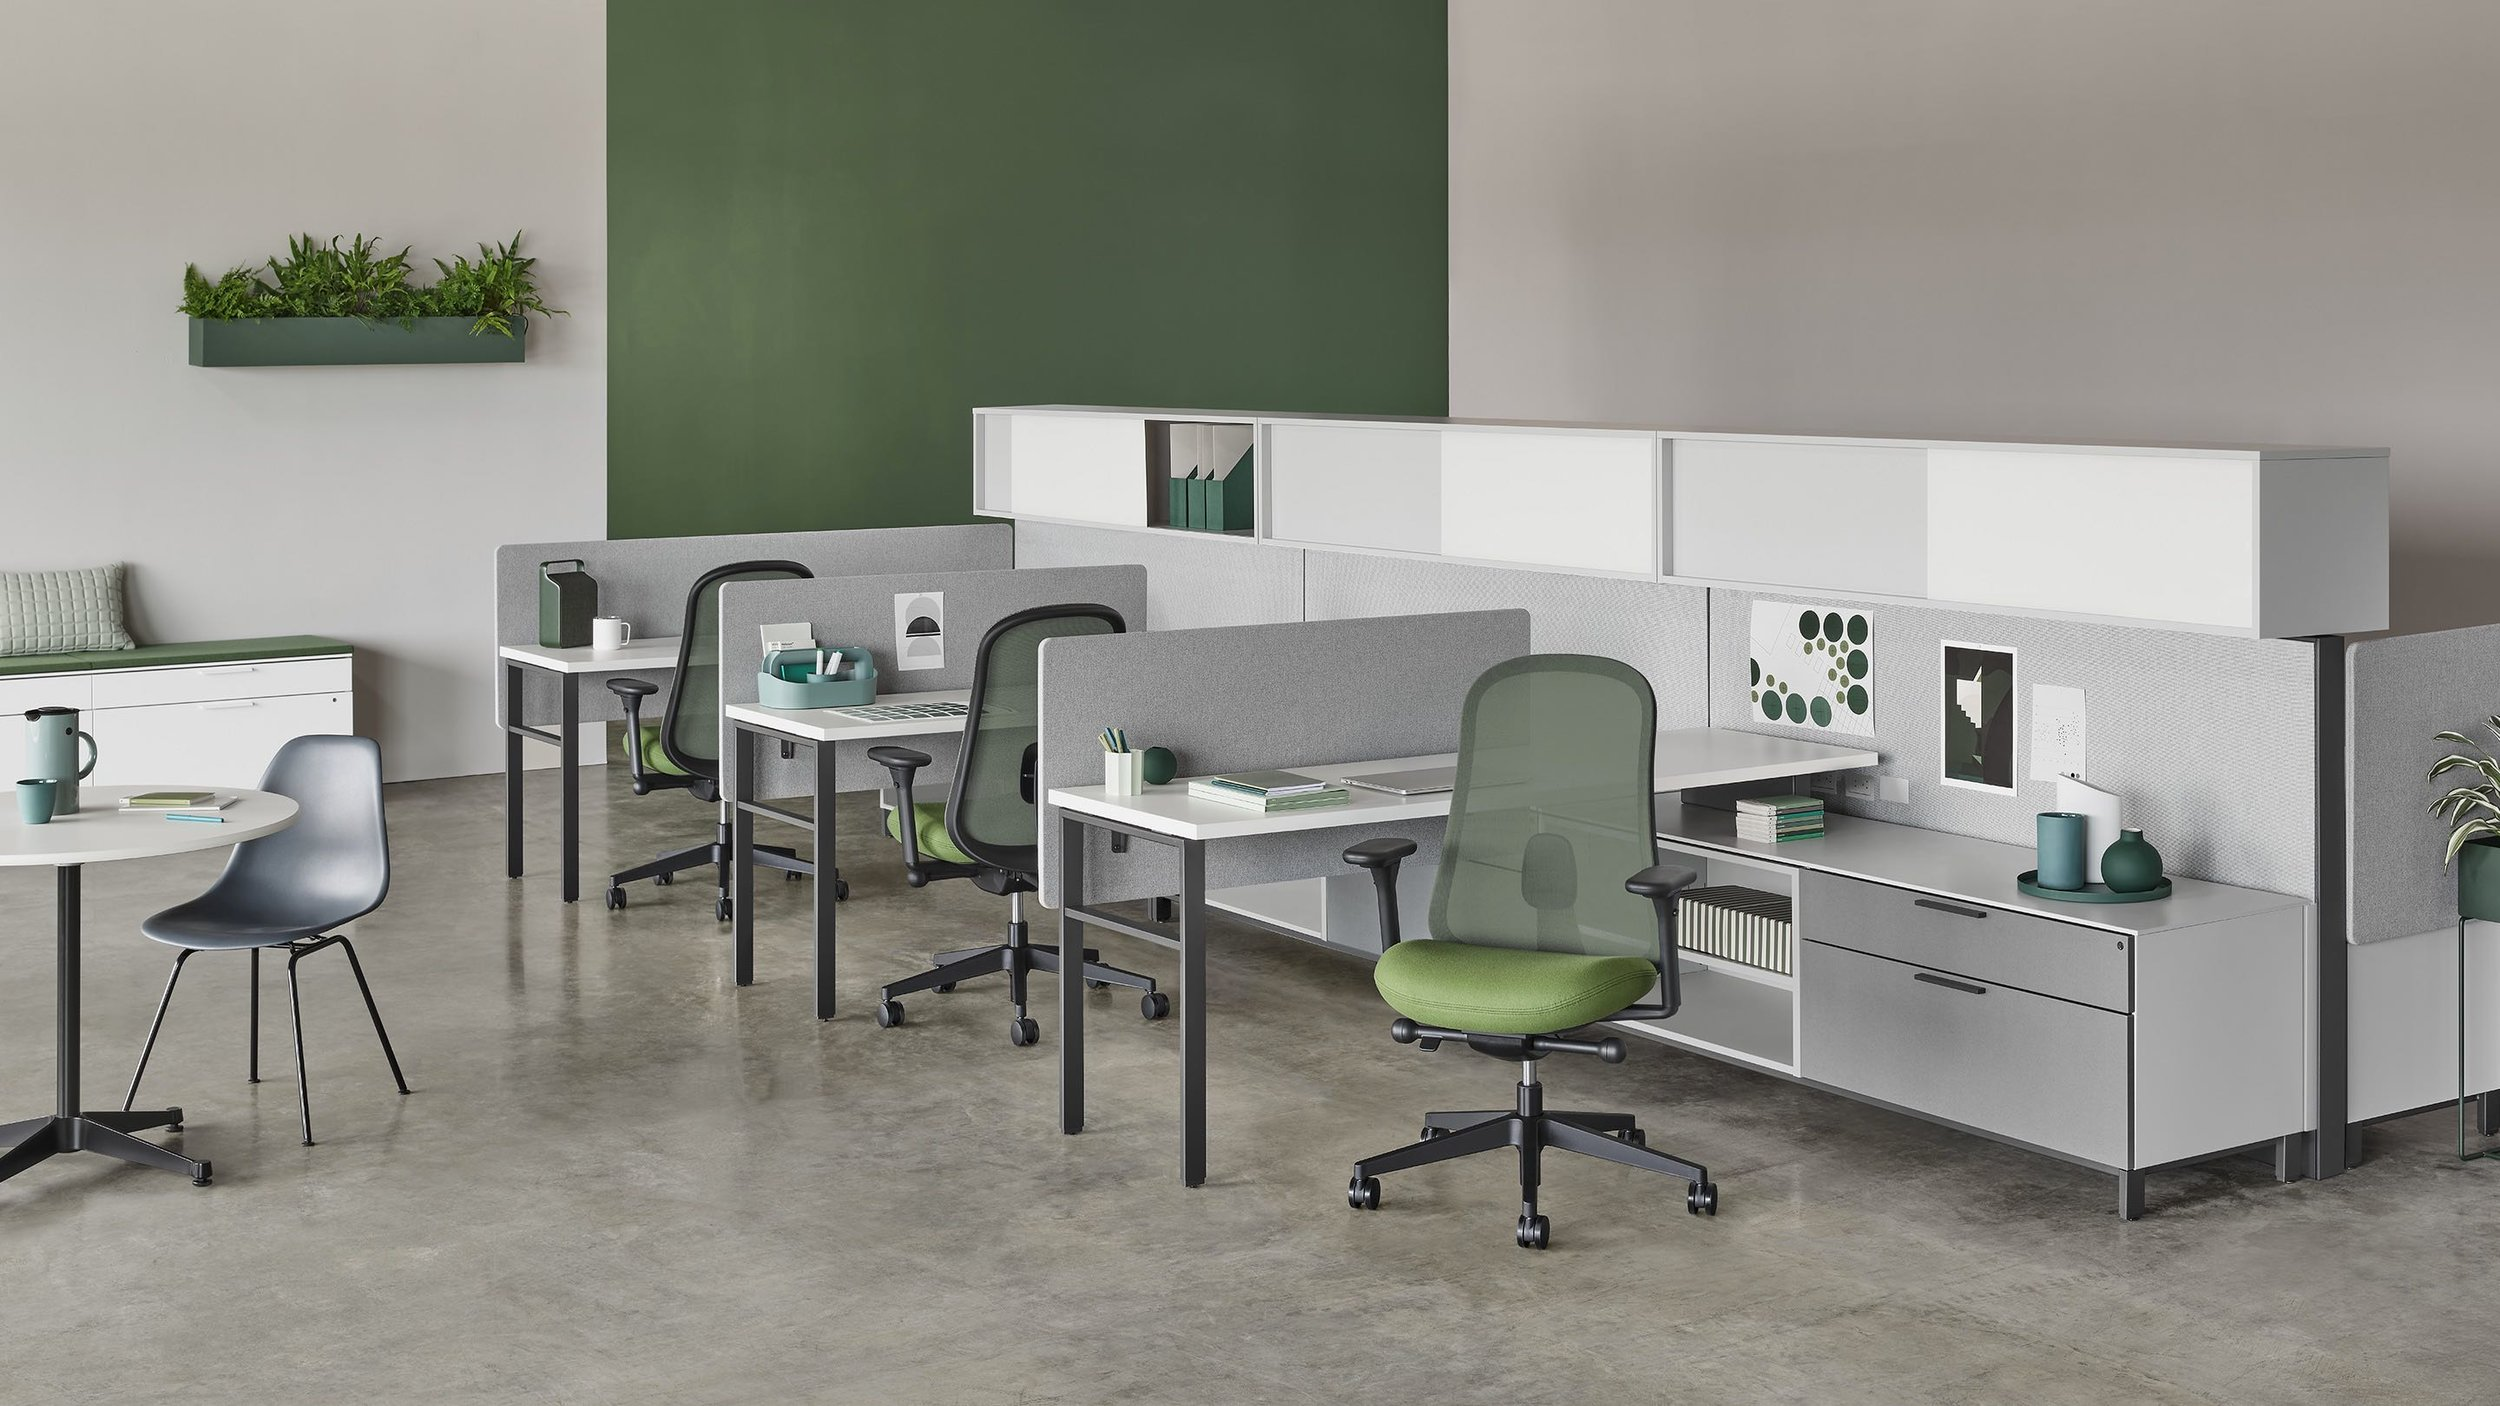 https://www.hermanmiller.com/products/seating/office-chairs/lino-chairs/product-details/